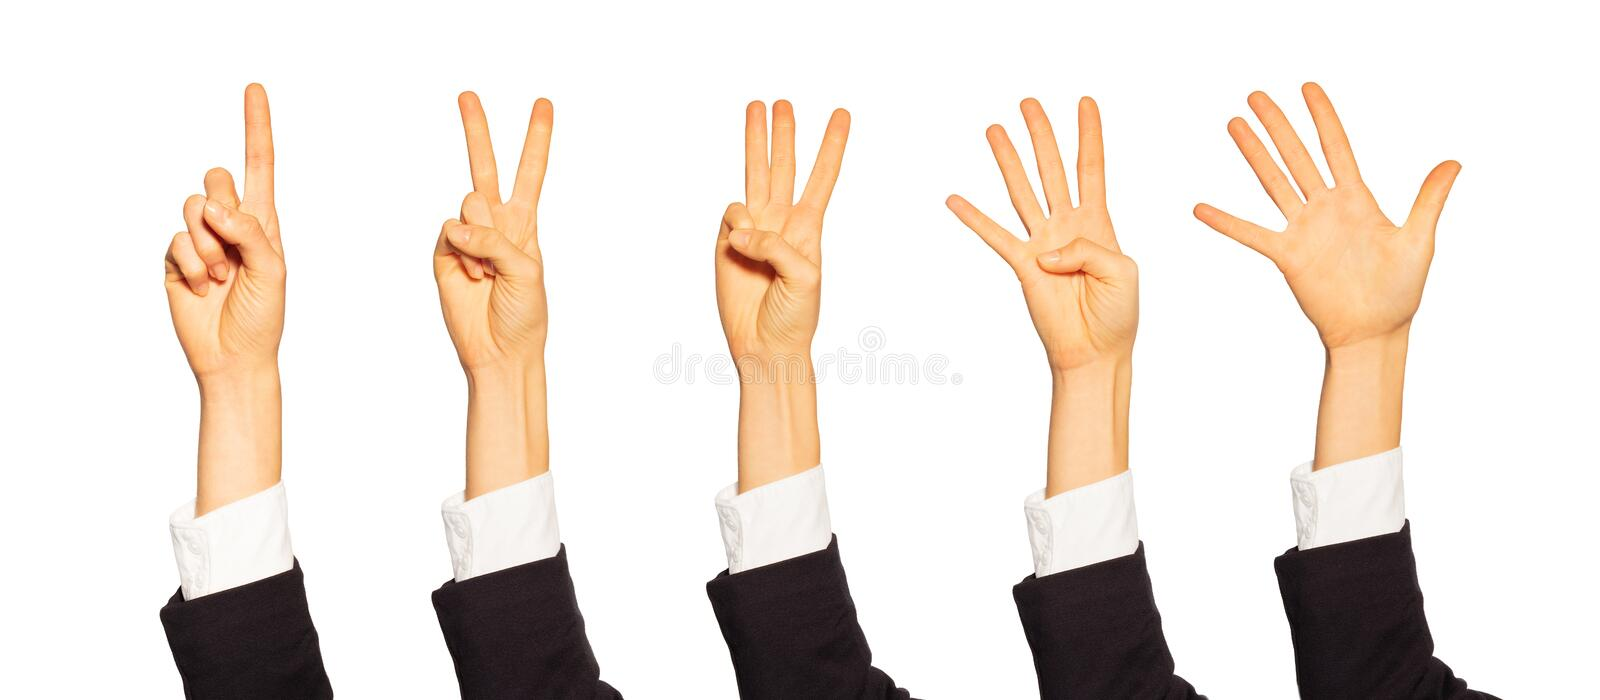 Female counting hands with number gestures on white royalty free stock photography